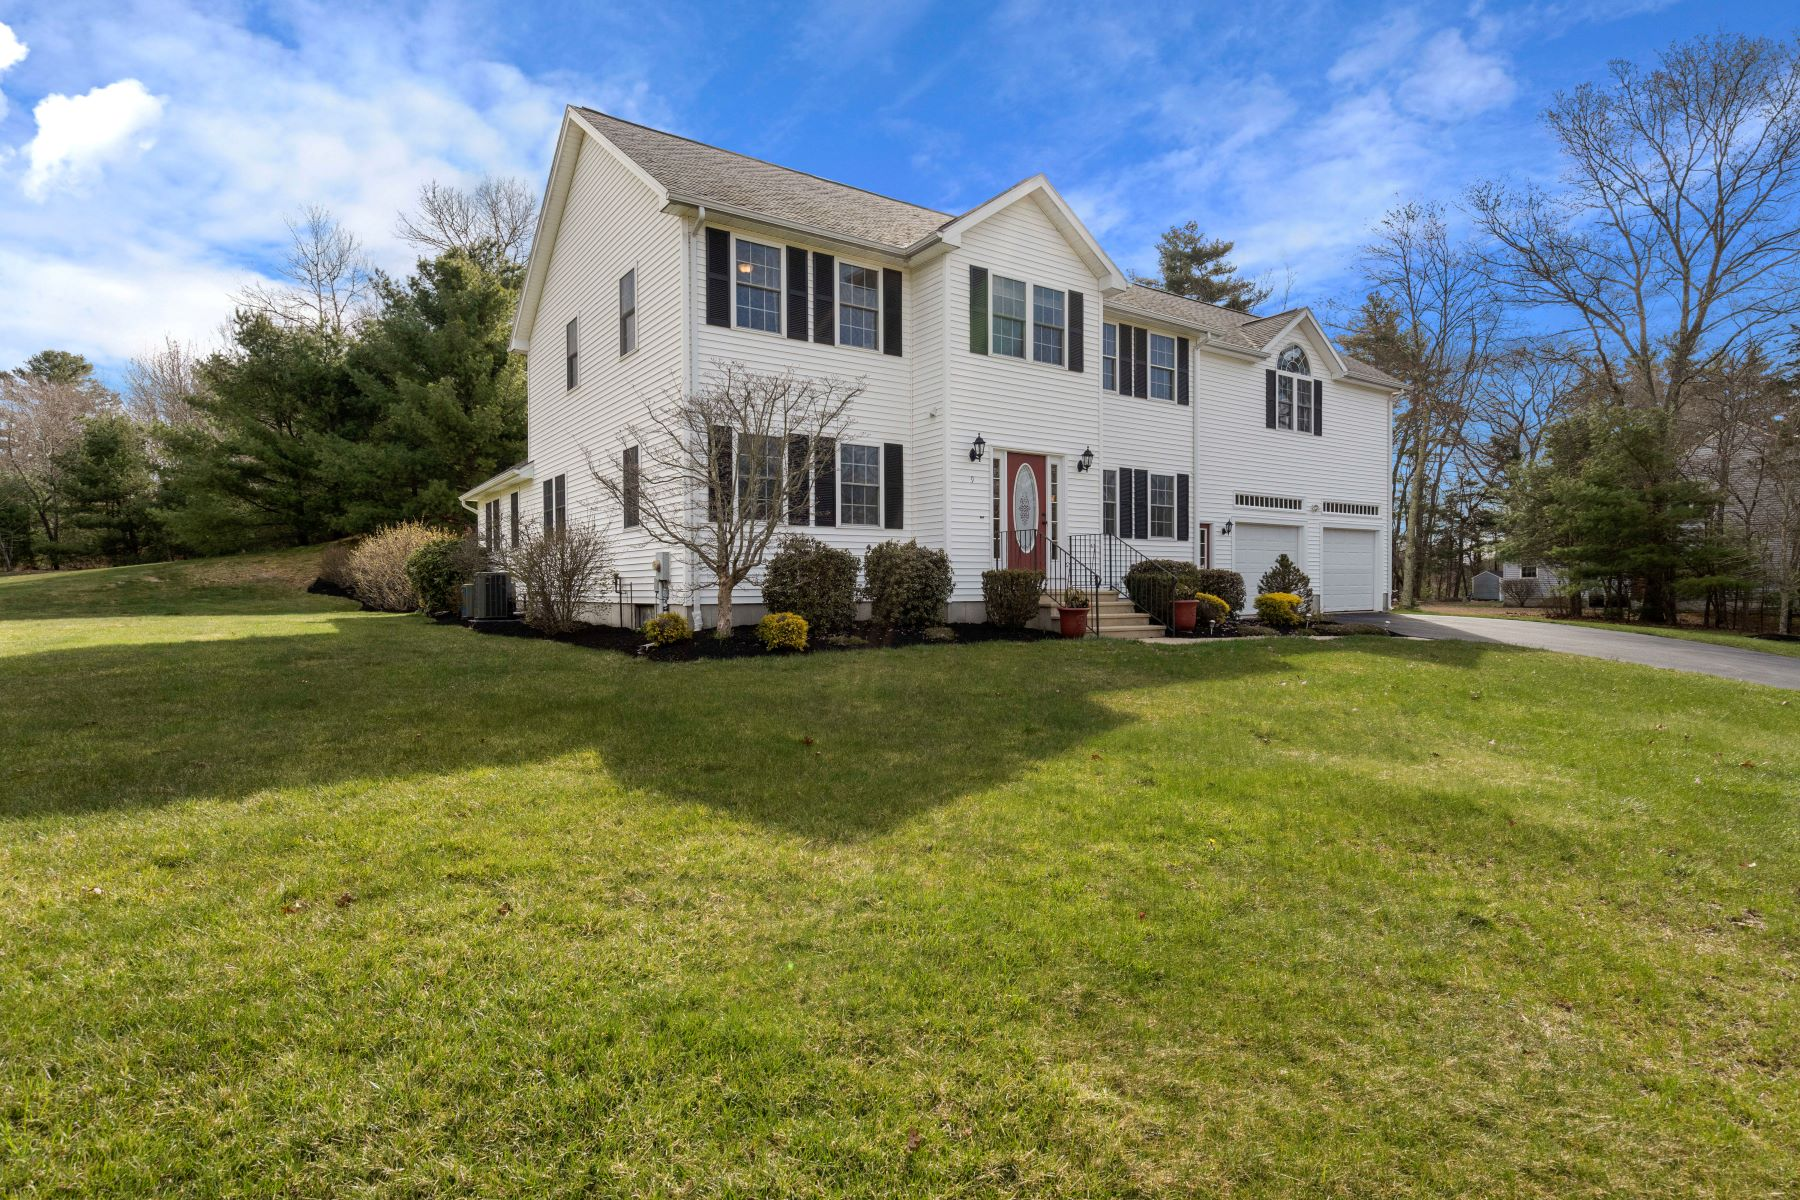 Single Family Homes for Active at 9 Rose Road 9 Rose Rd Millis, Massachusetts 02054 United States